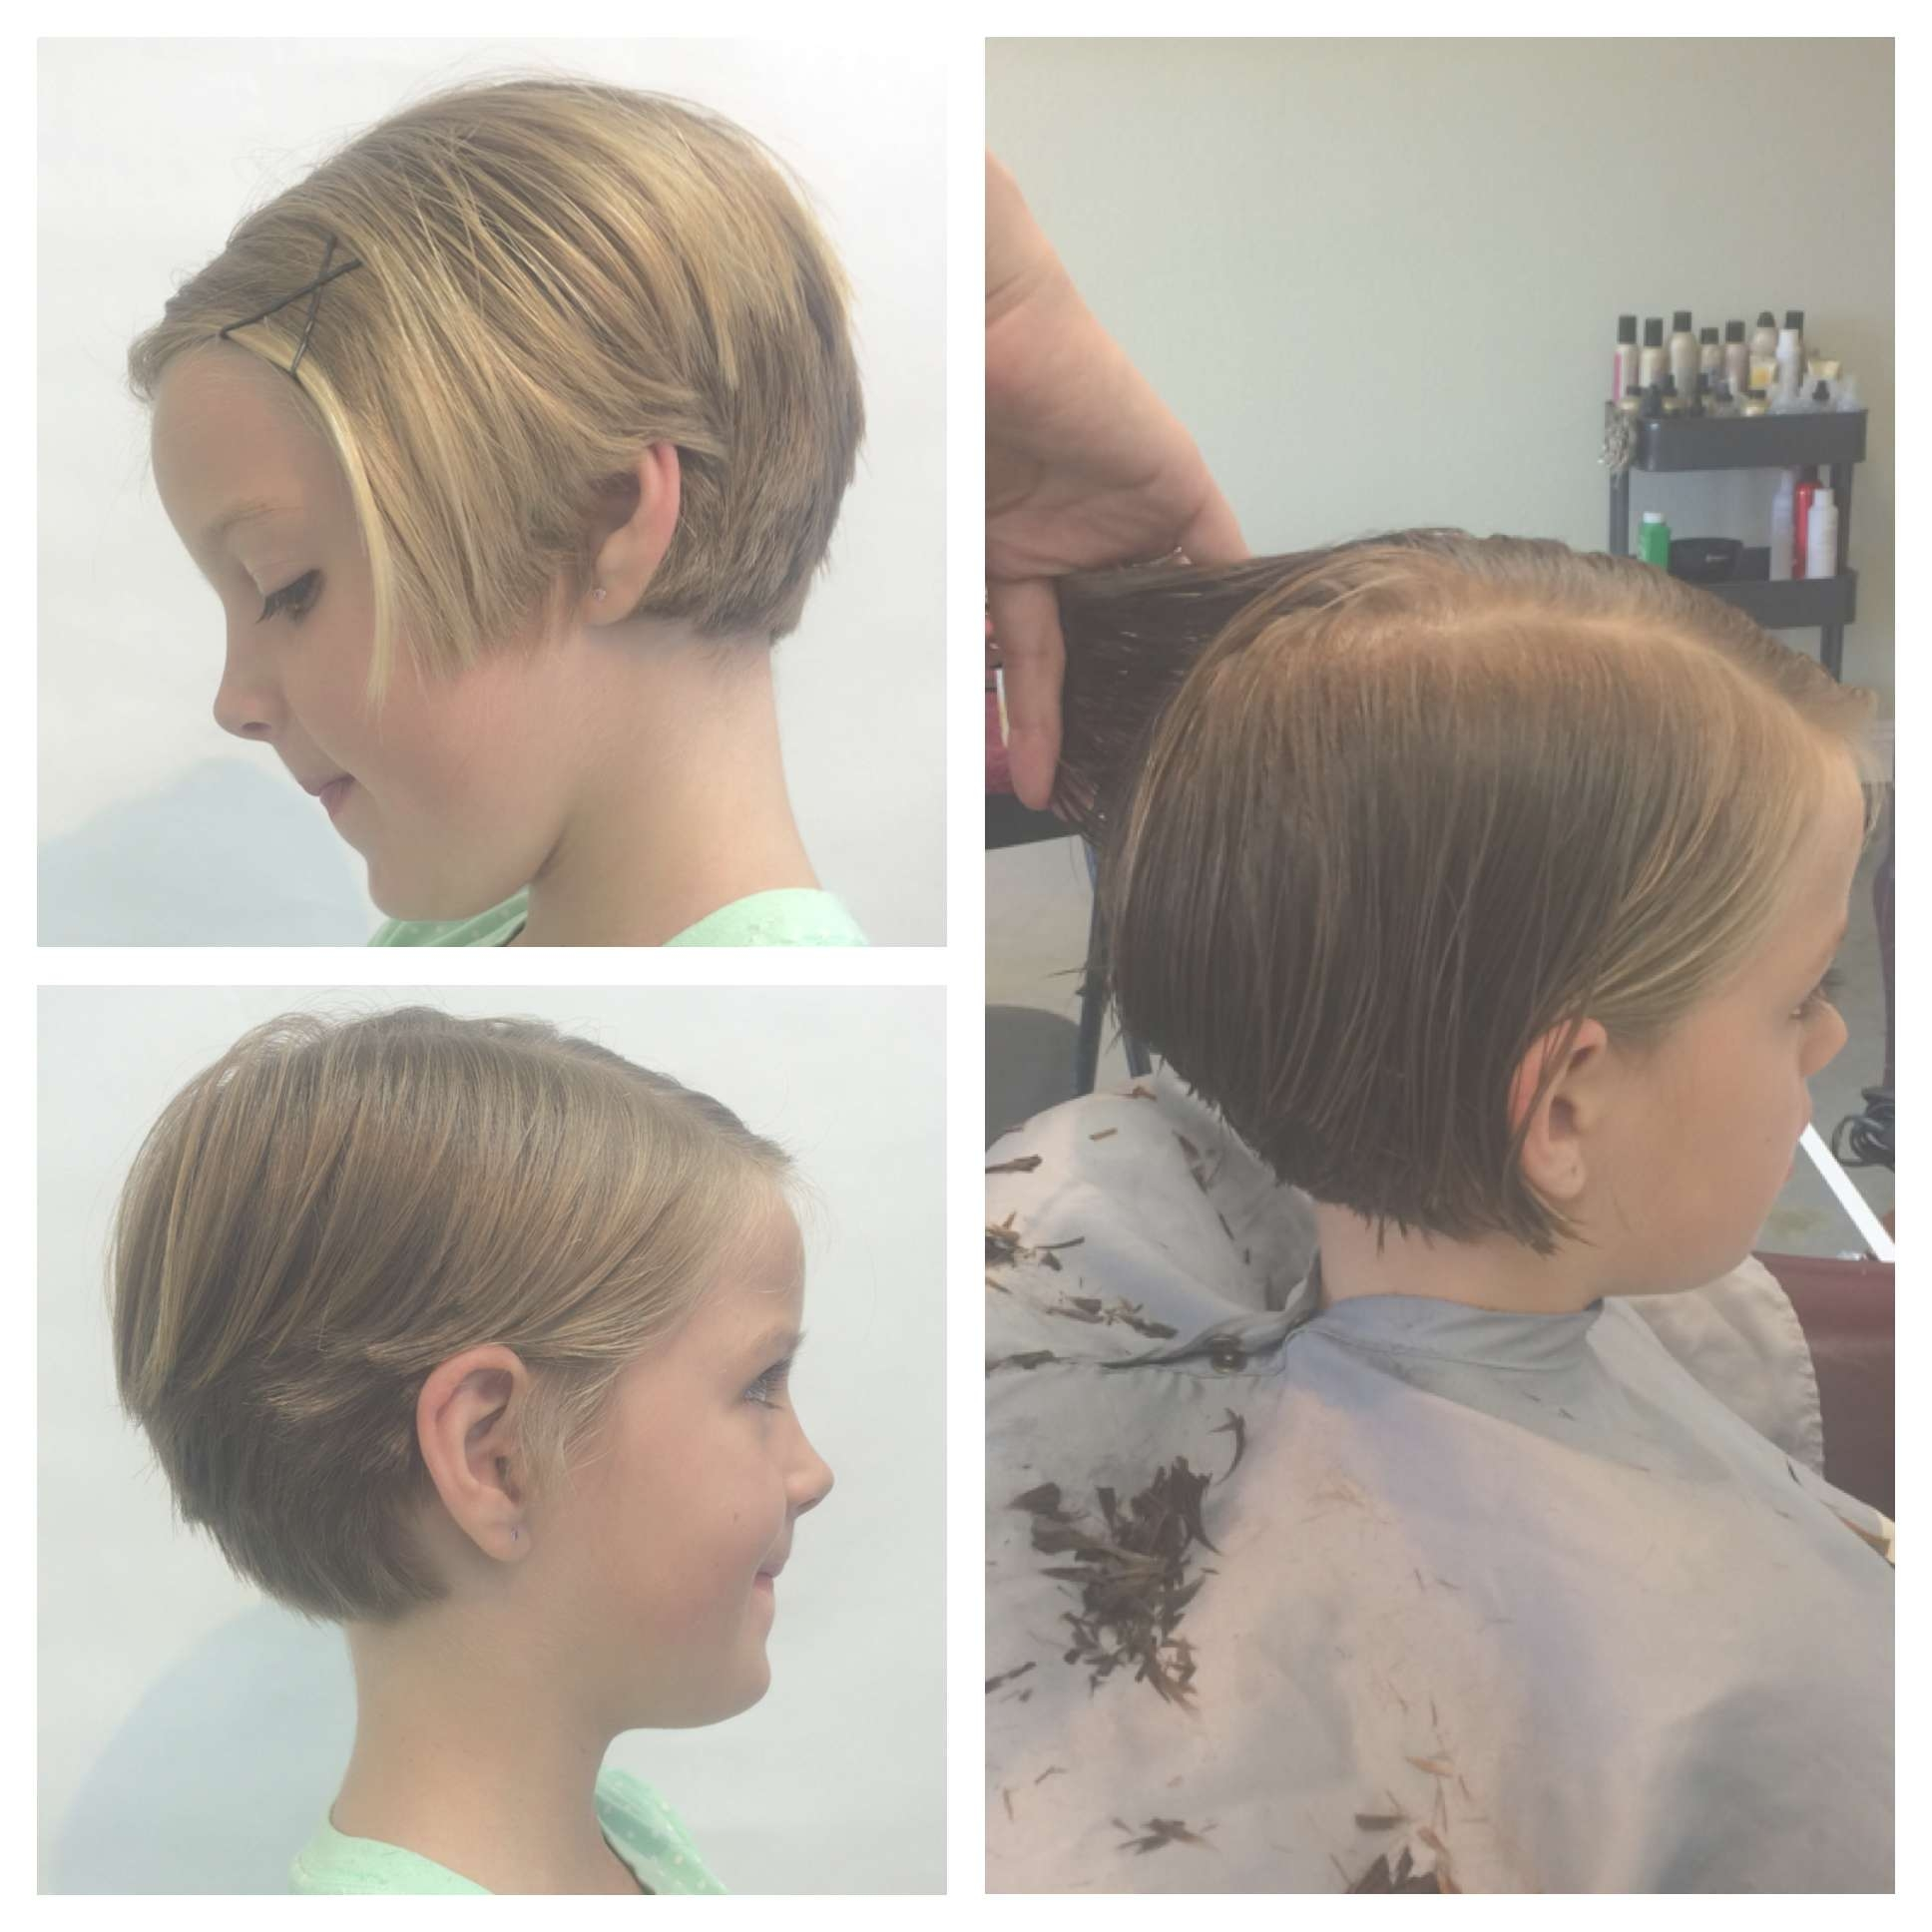 Child Pixie Hair Cut Girls Pixie Hairstyle Cute Short Hair Inside Most Recent Baby Girl Pixie Hairstyles (View 2 of 15)